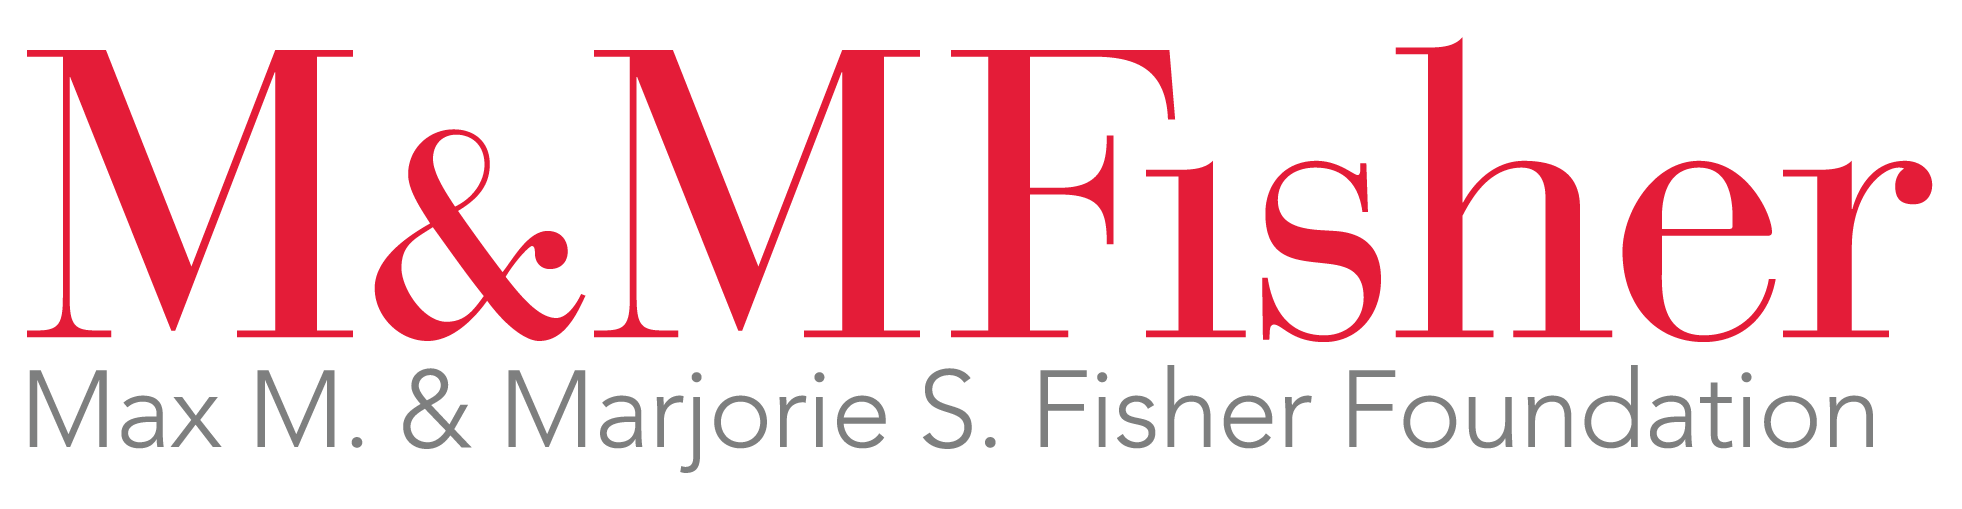 MMFisher_logo_Red_Grey Floating